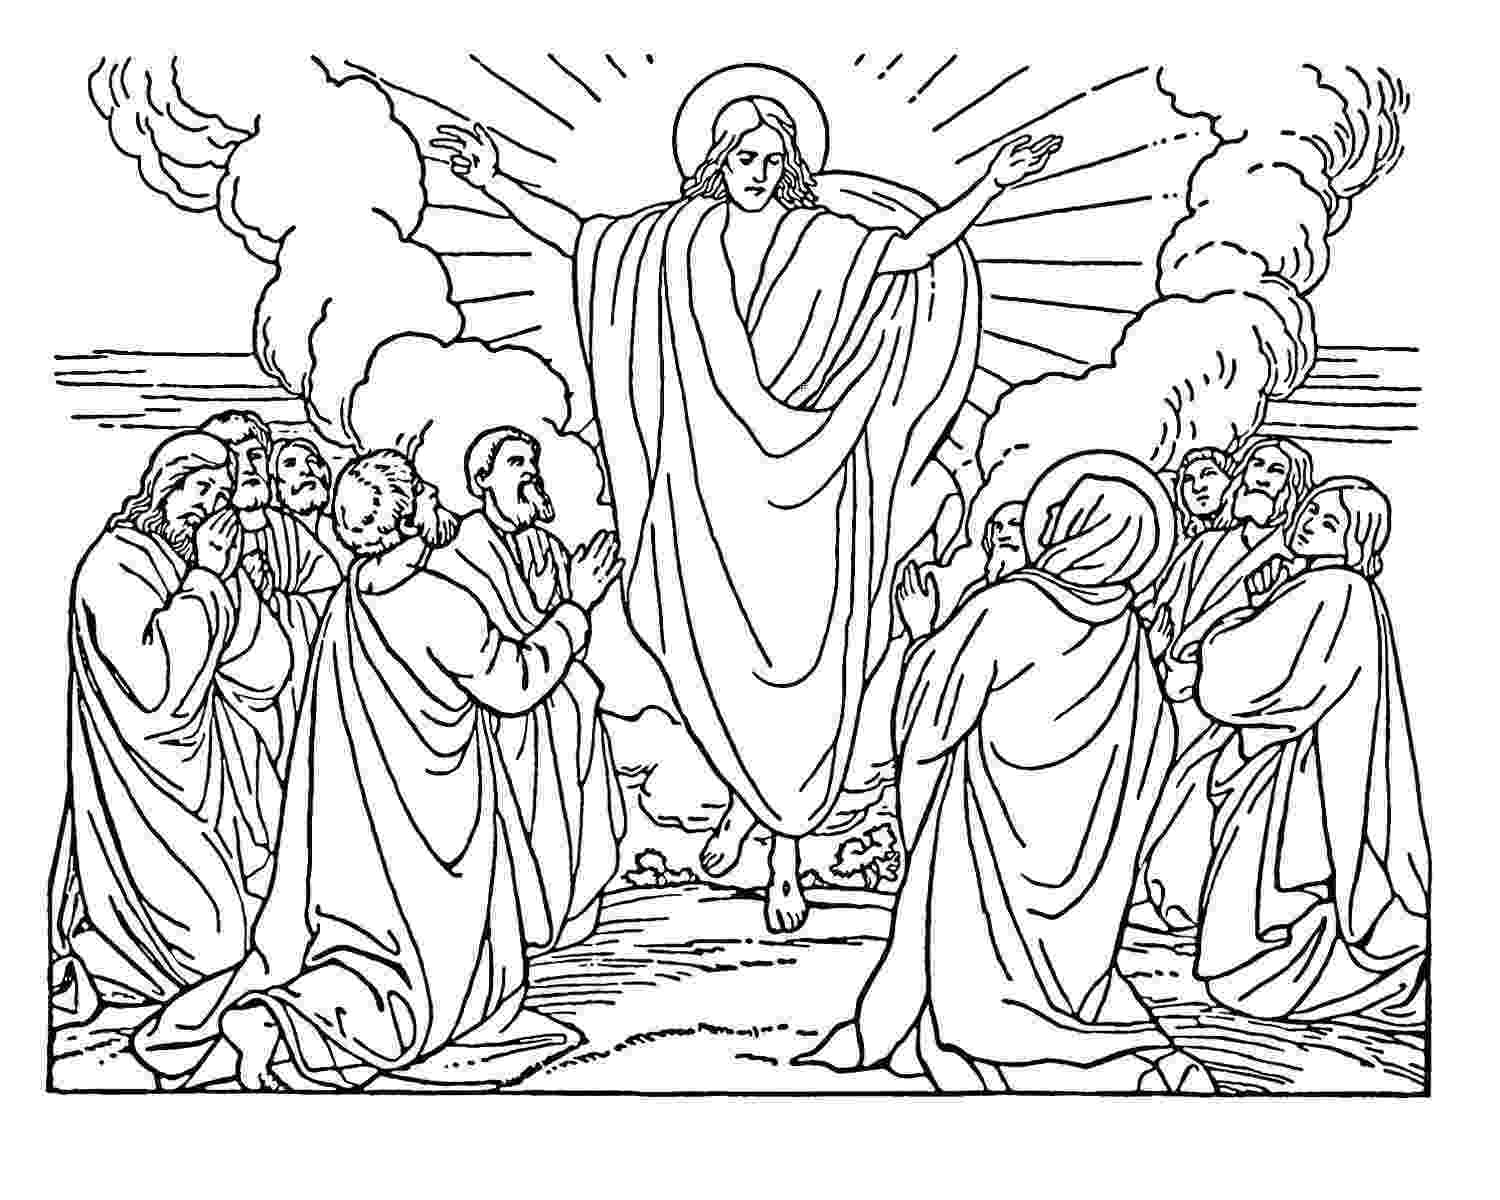 bible color pages bible coloring pages teach your kids through coloring color bible pages